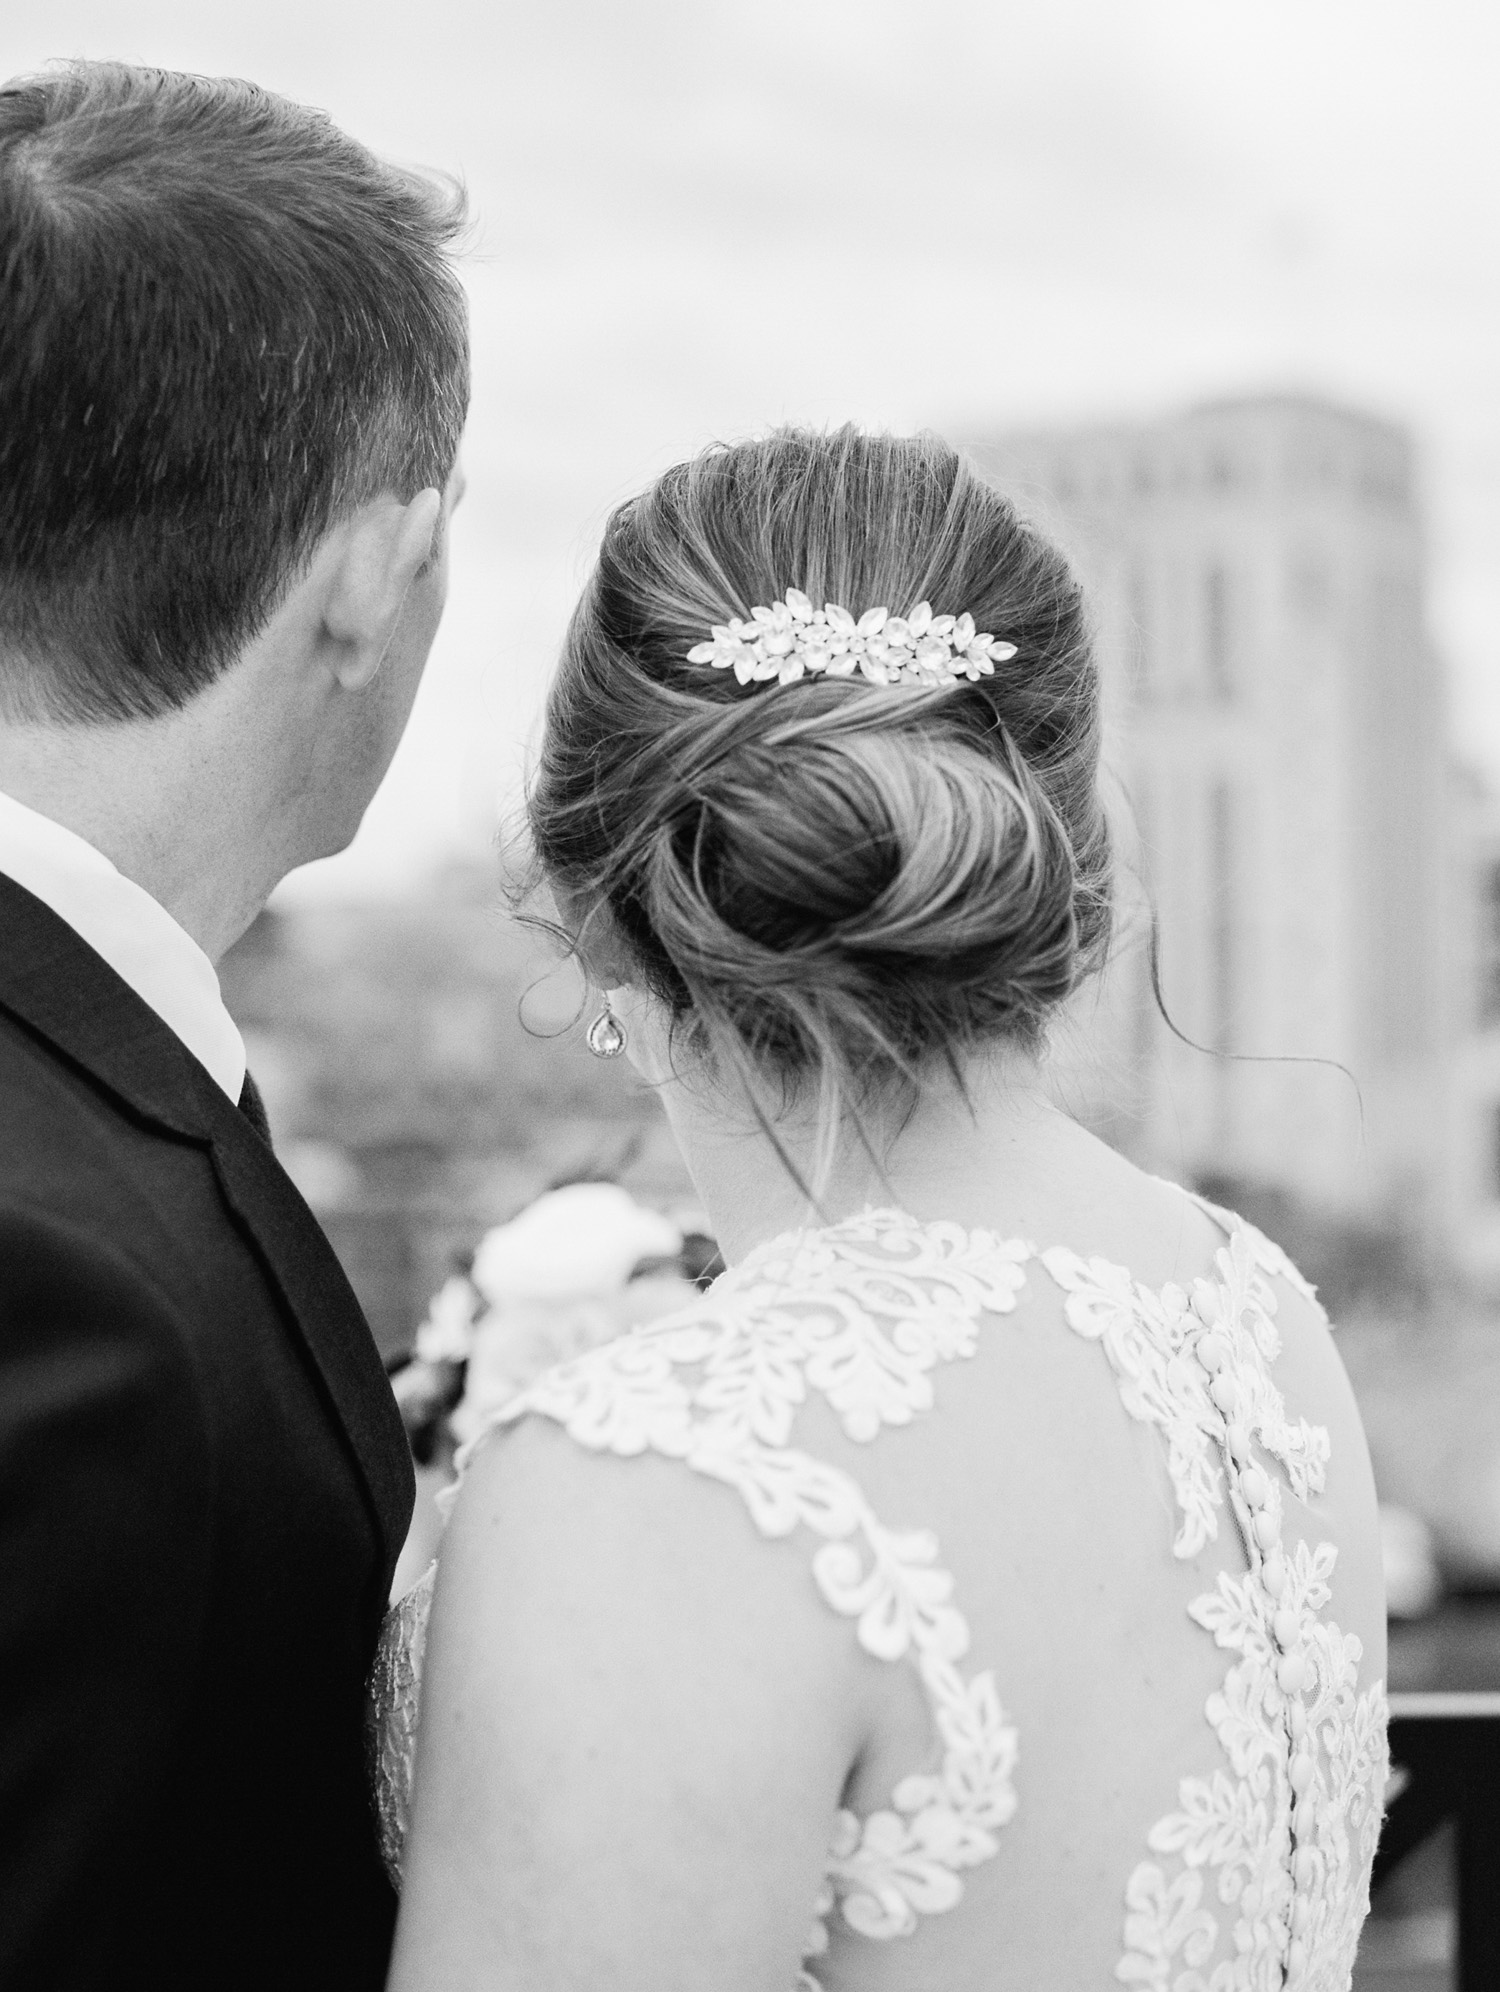 A bride and groom photographed from behind, featuring the bride's beautiful crystal headpiece